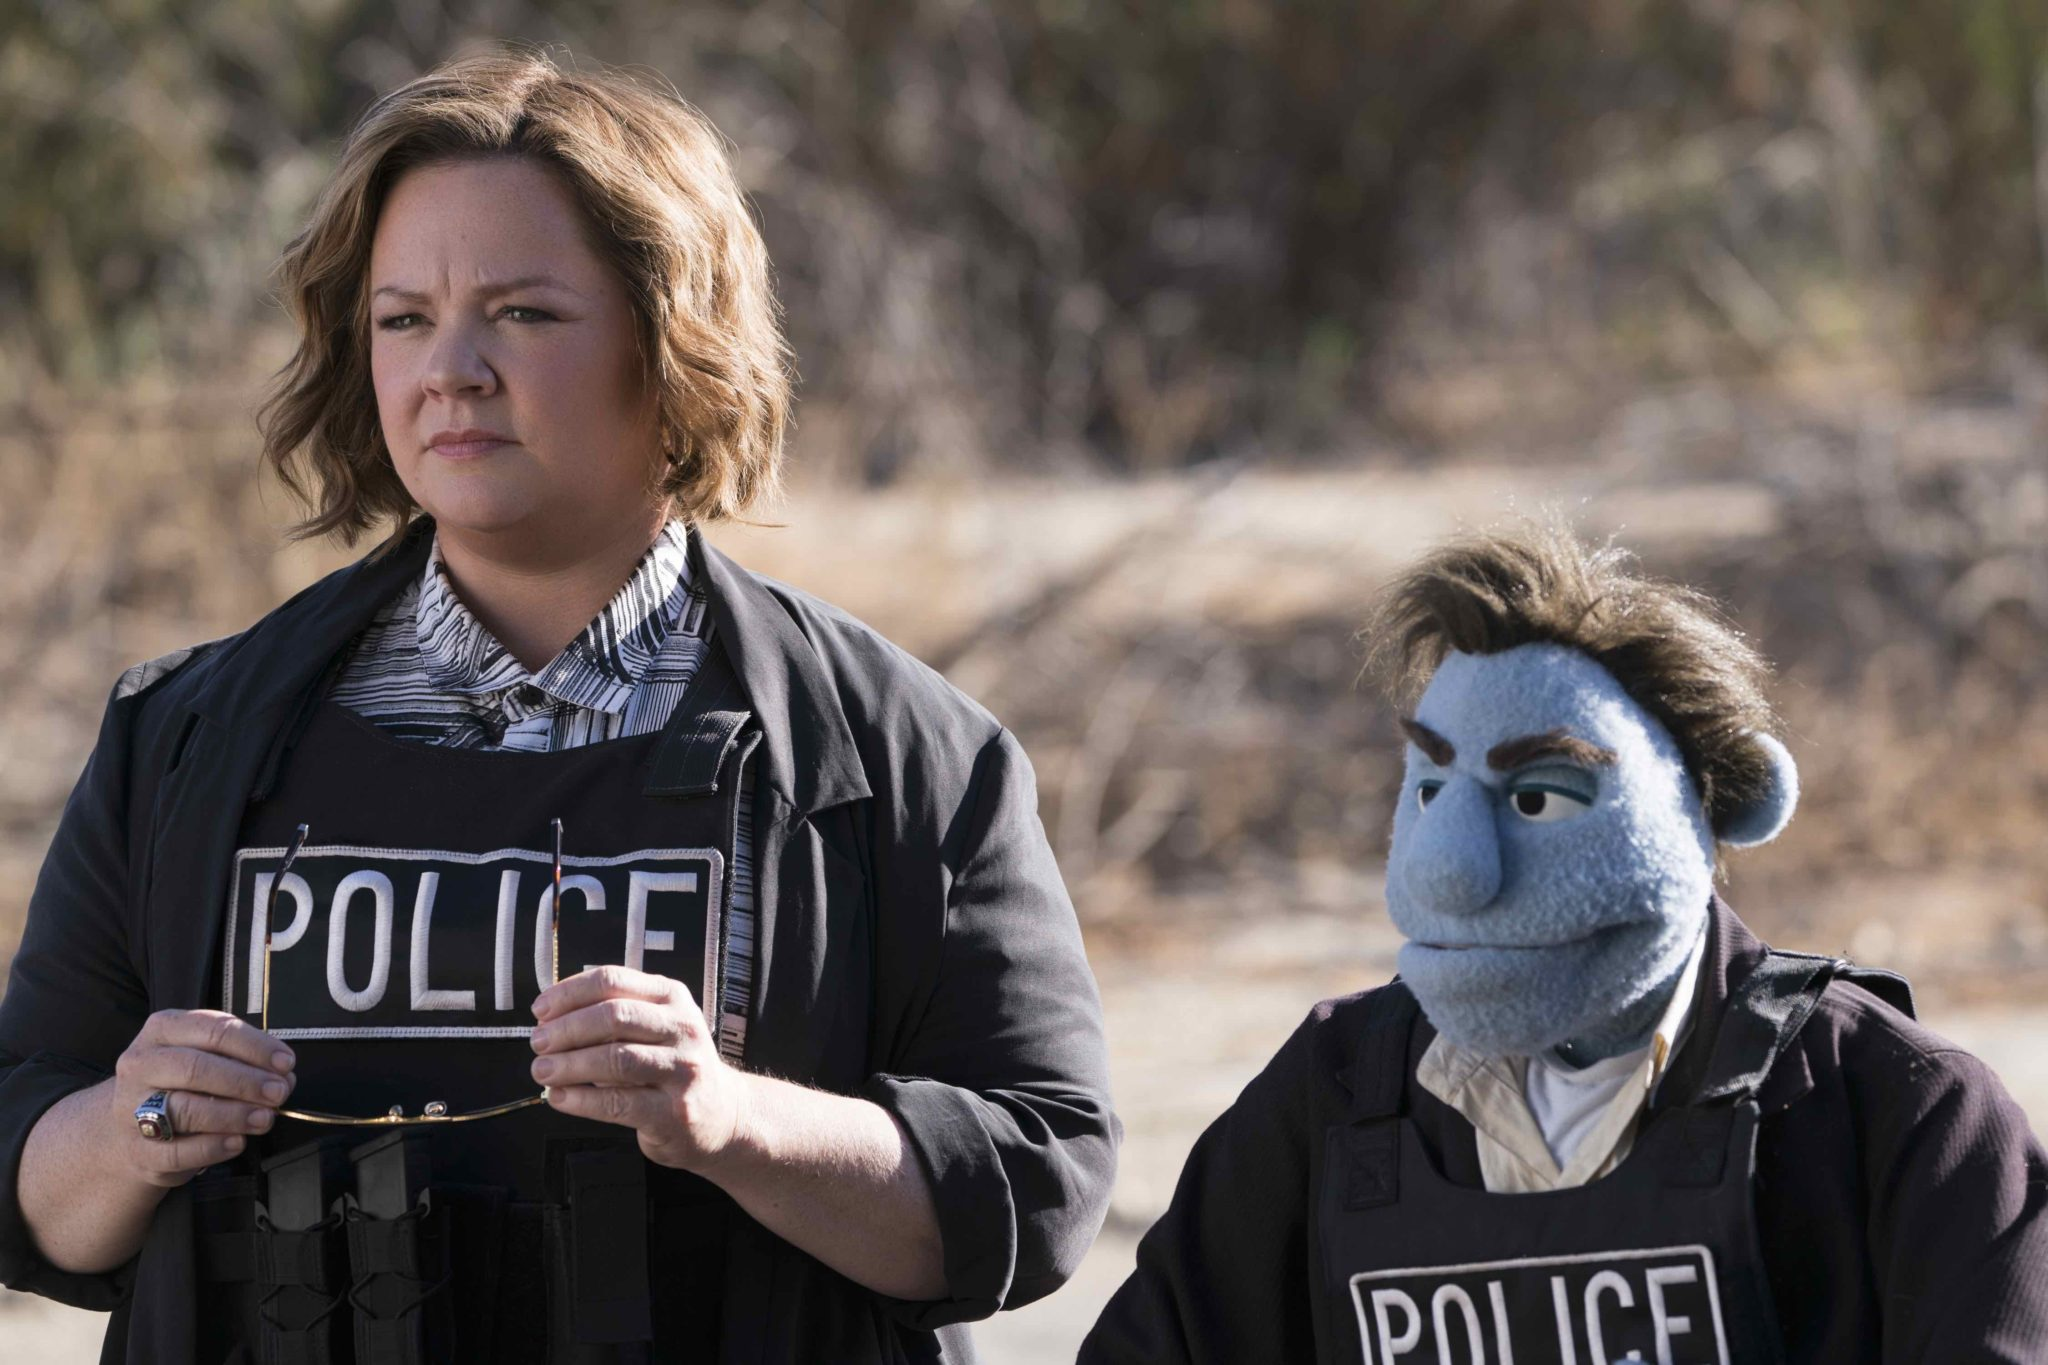 THE HAPPYTIME MURDERS – NEW FACEBOOK FILTERS